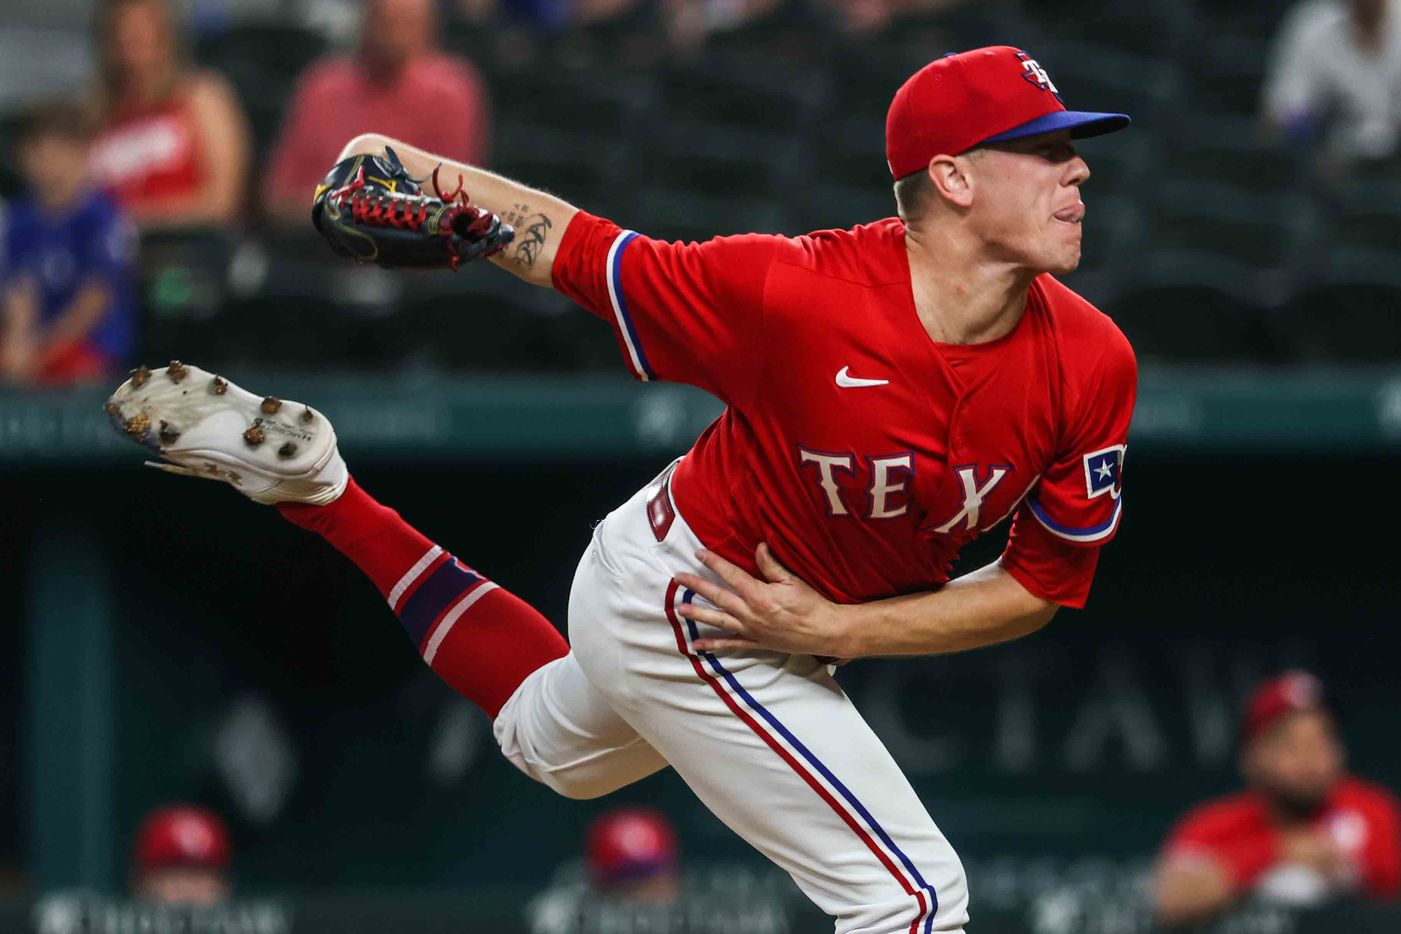 Texas Rangers pitcher Kolby Allard (39) throws during the first inning against the Seattle Mariners at Globe Life Field in Arlington, Texas, Friday, July 30, 2021. (Lola Gomez/The Dallas Morning News)